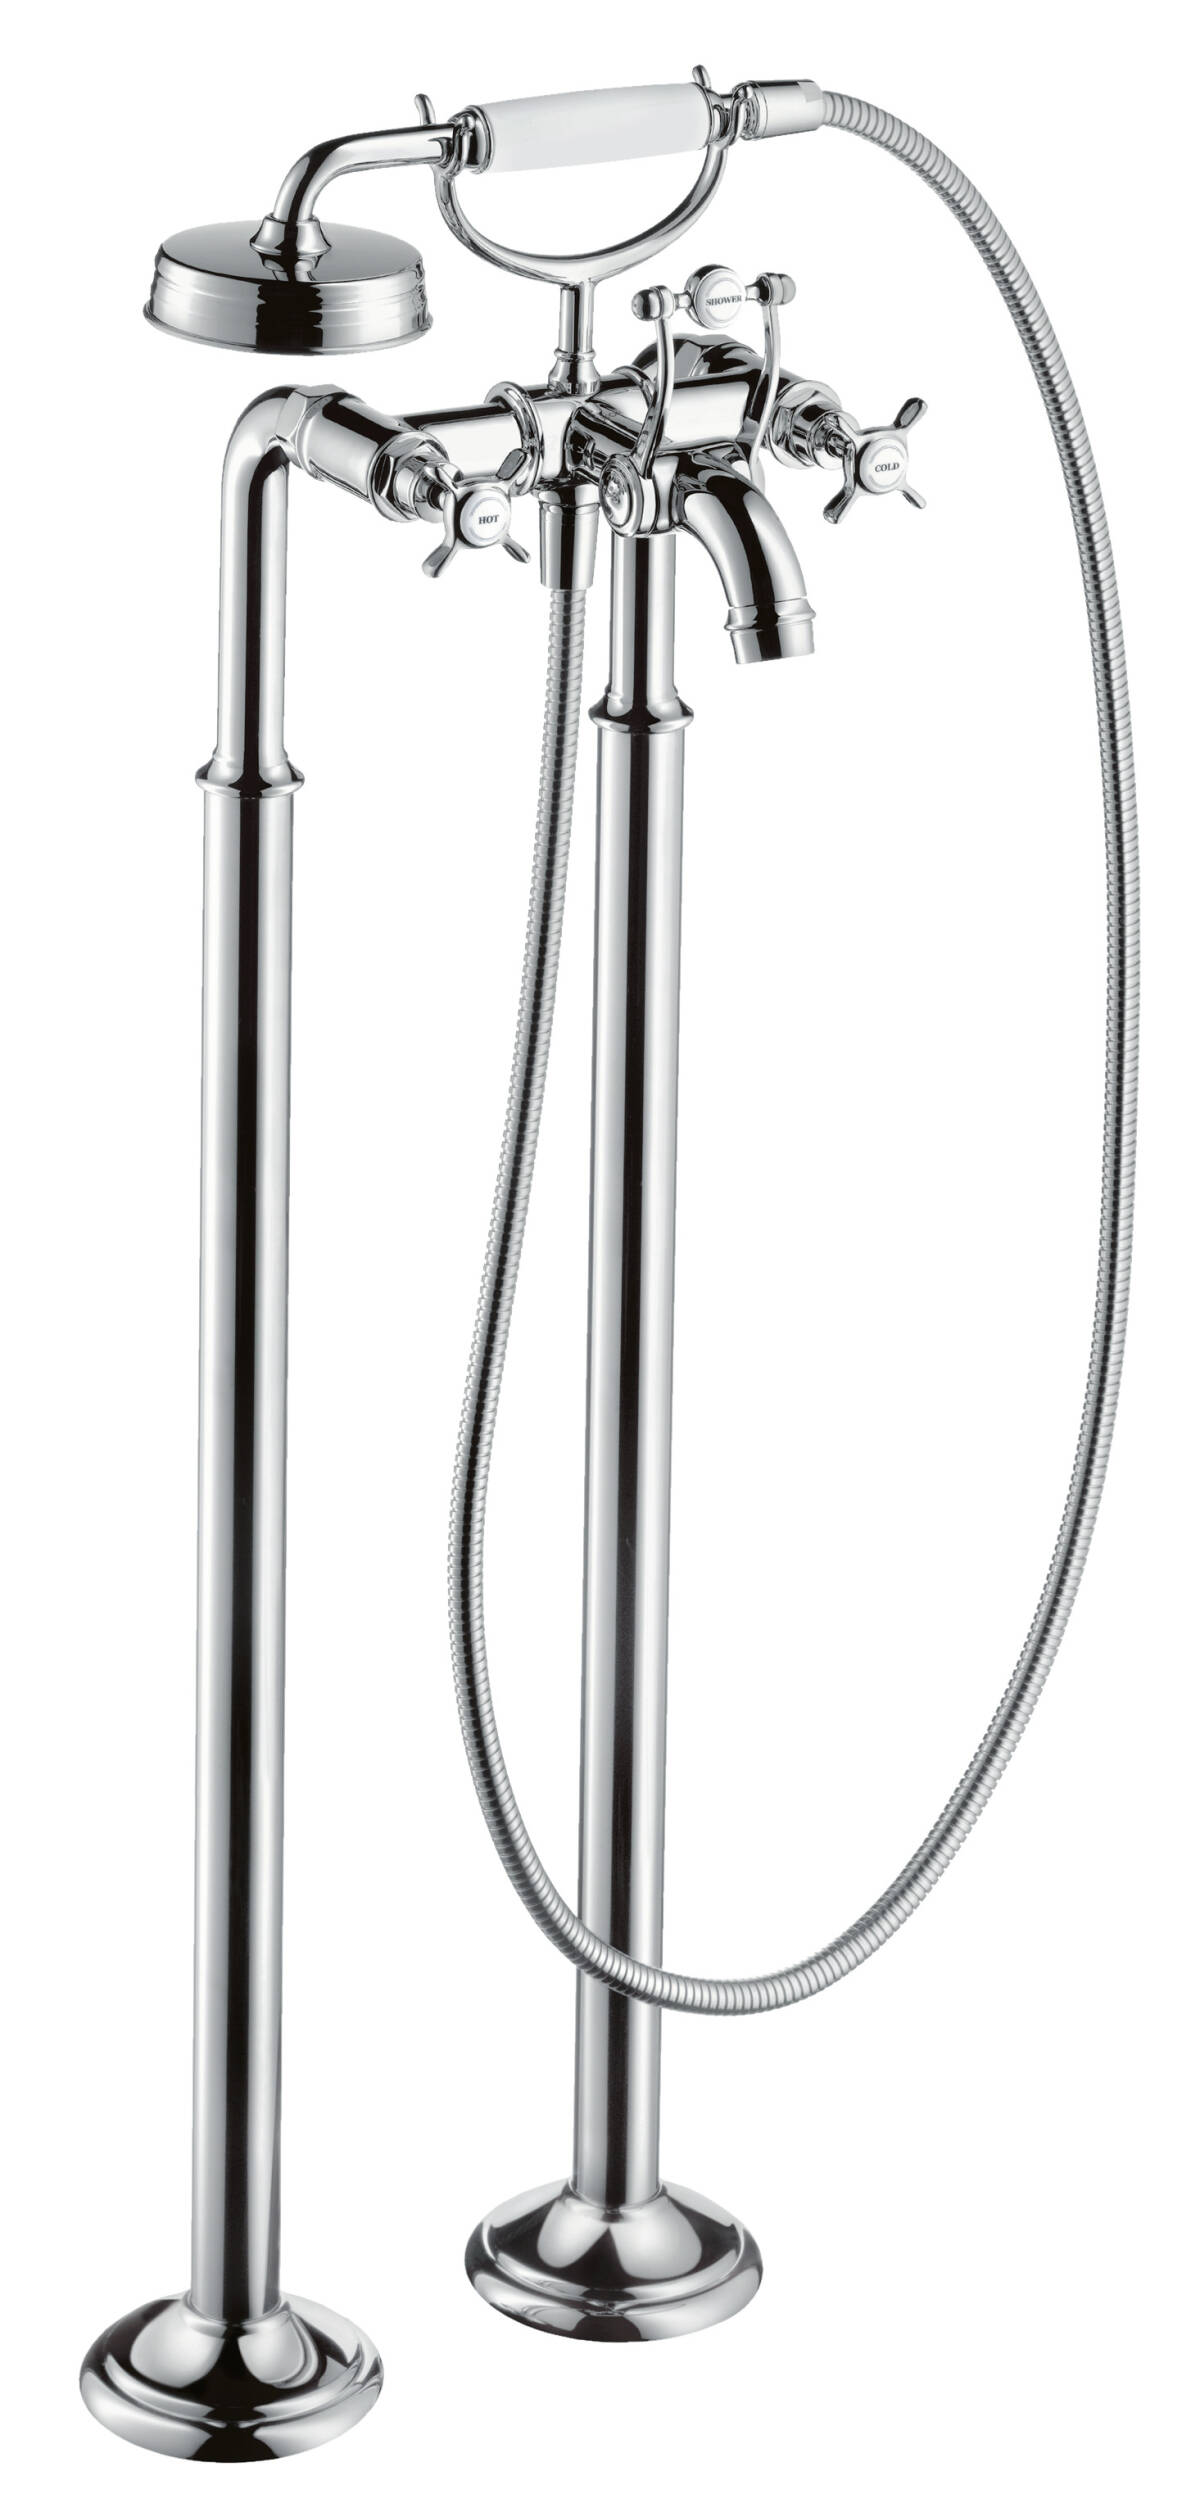 2-handle bath mixer floor-standing with cross handles, Polished Black Chrome, 16547330